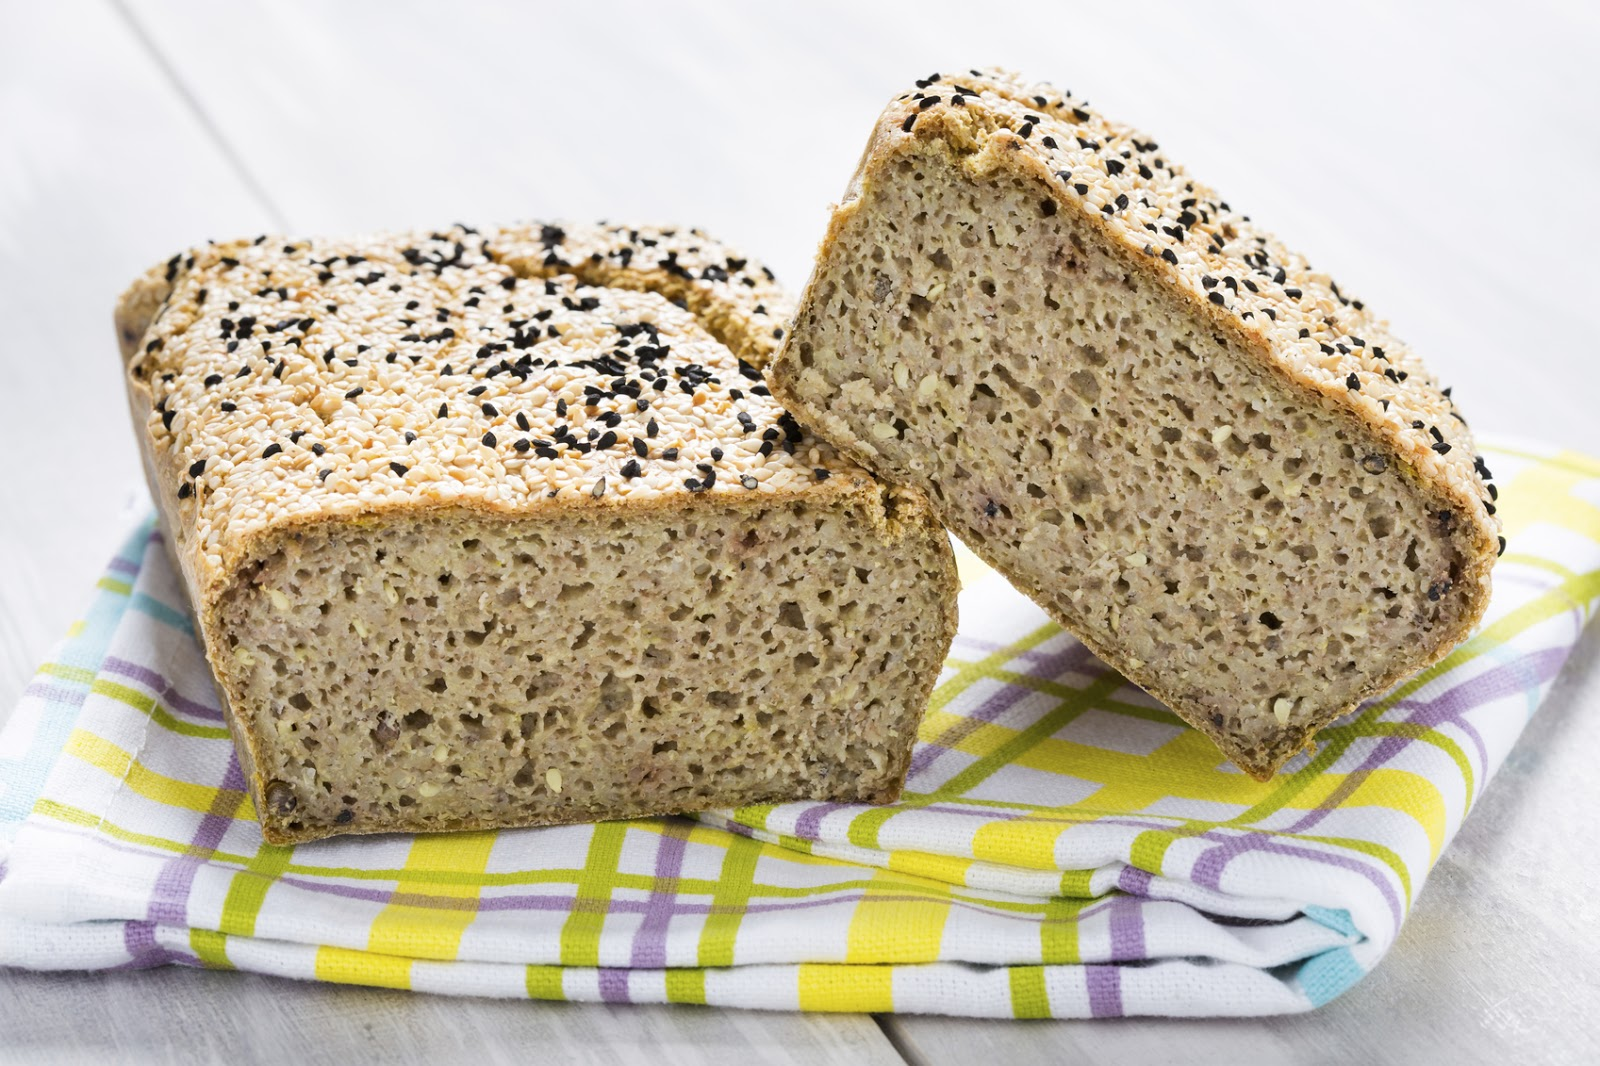 Simple Buckwheat Gluten-Free Bread Recipe